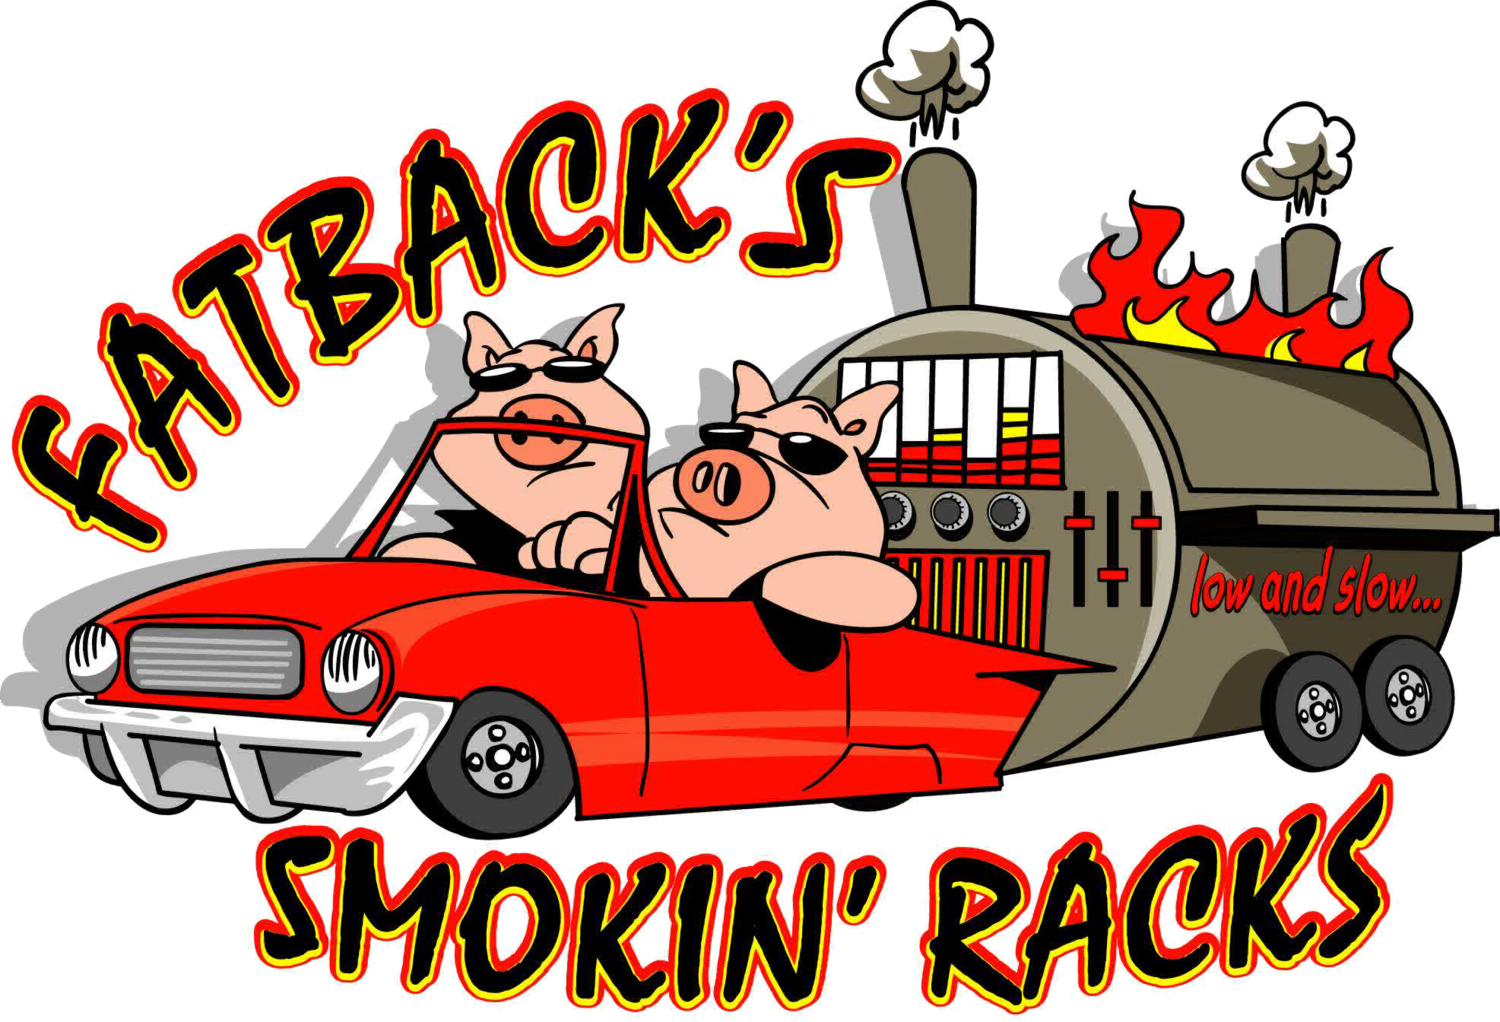 Fatbacks Smokin' Racks